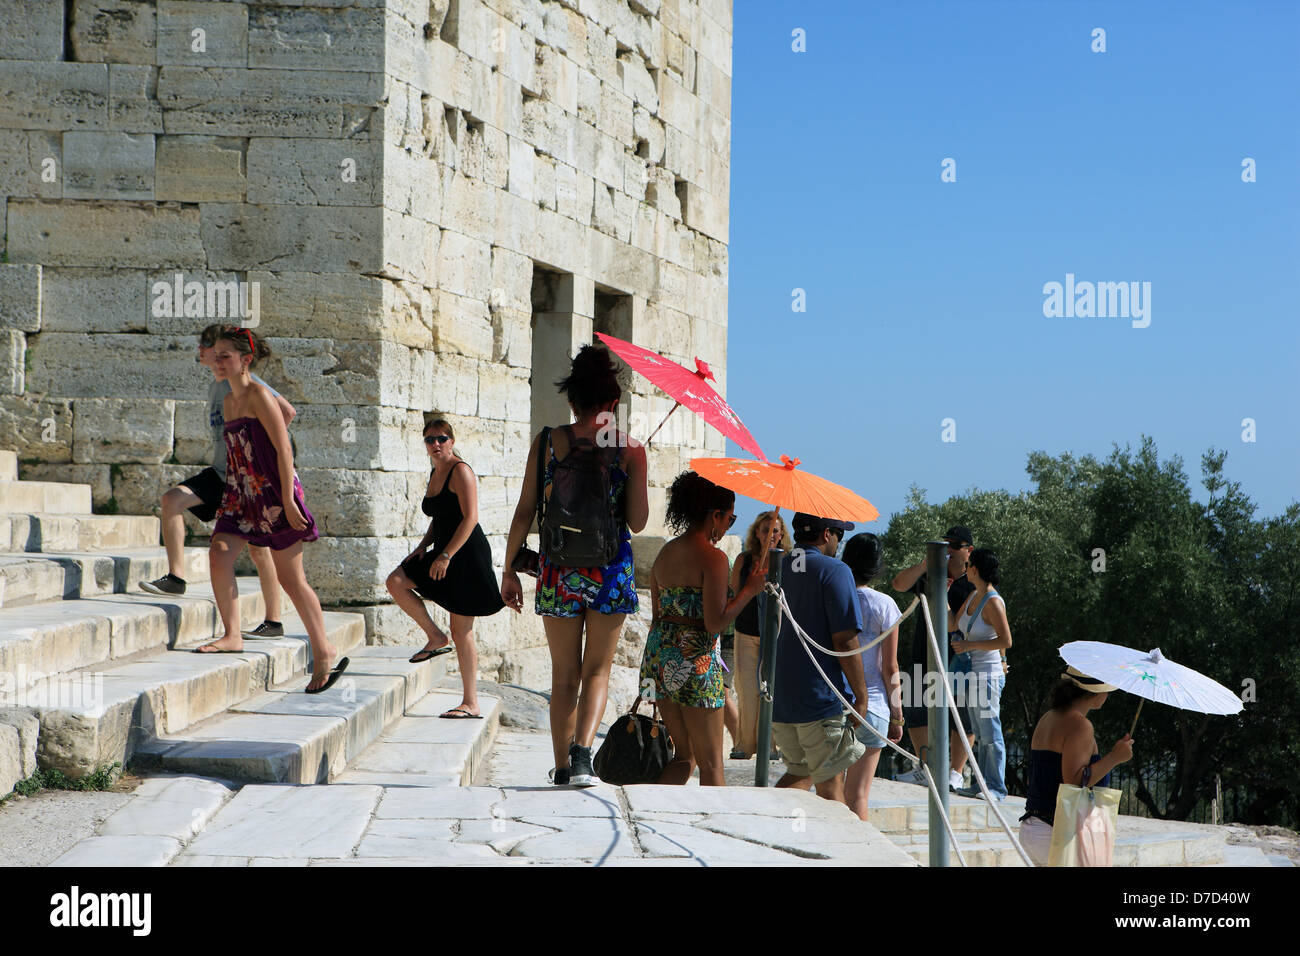 Bright coloured sunshades shielding visitors from the extreme heat and sun at the Acropolis in Athens Greece - Stock Image